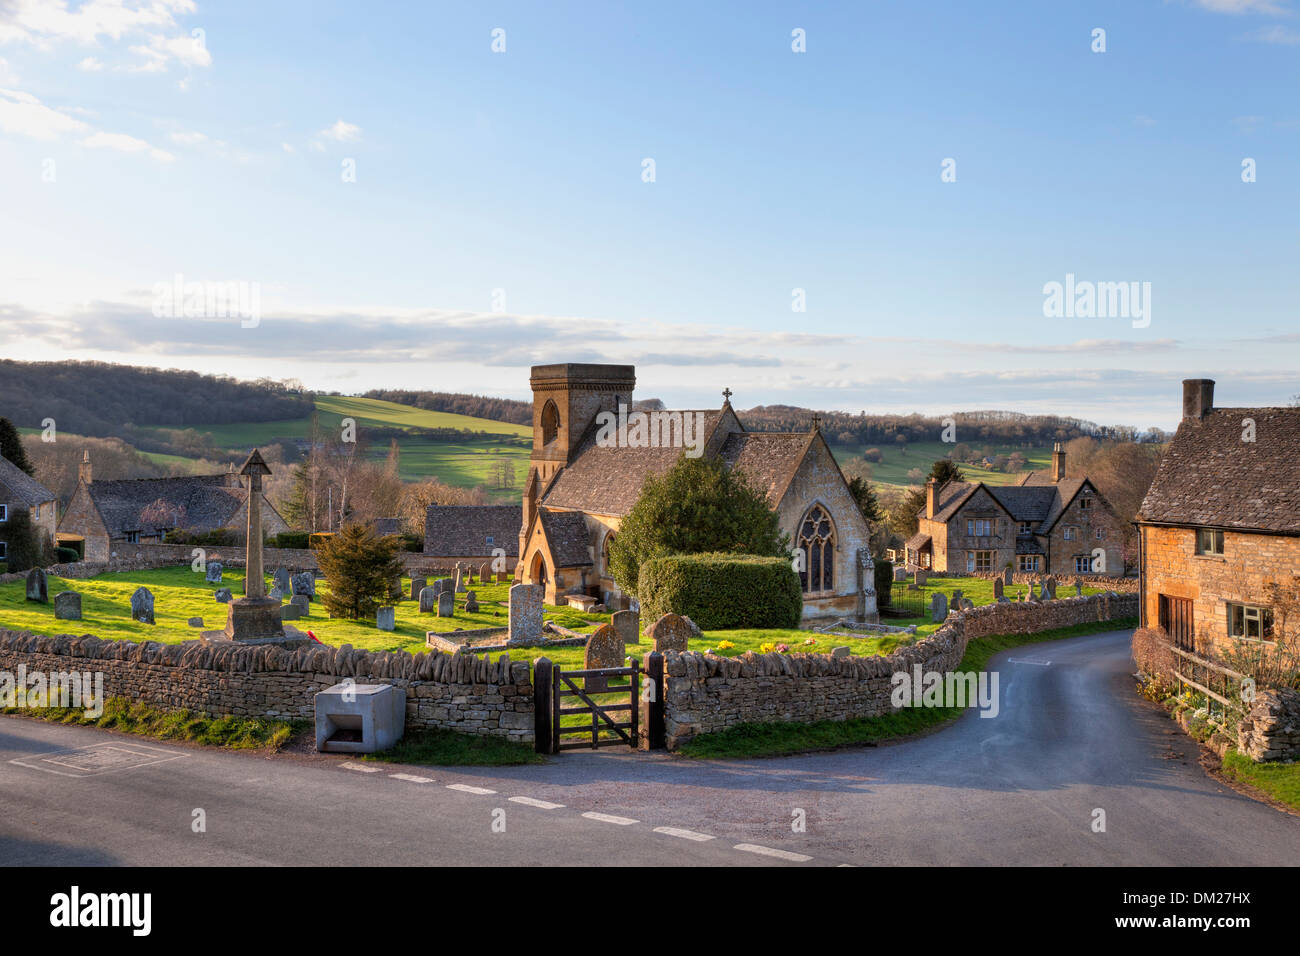 The pretty Cotswold church at Snowshill, Gloucestershire, England. - Stock Image